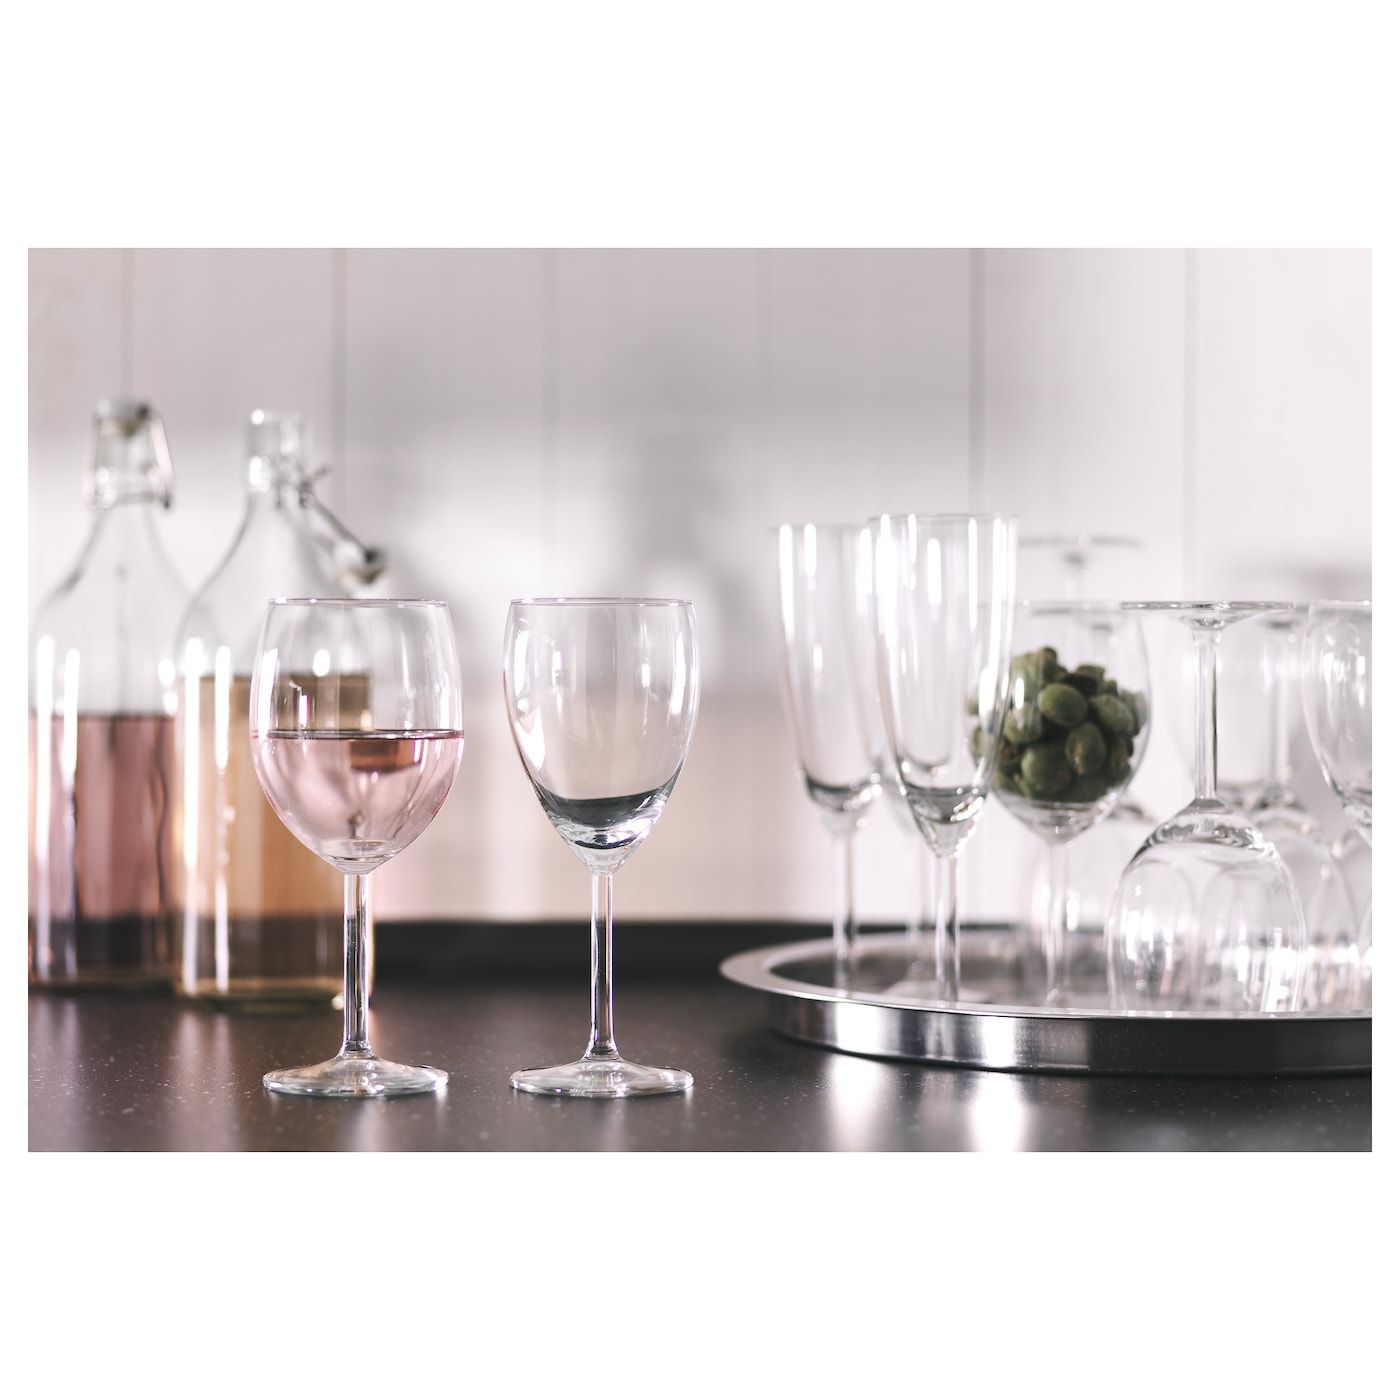 IKEA SVALKA white wine glass Dishwasher-safe.